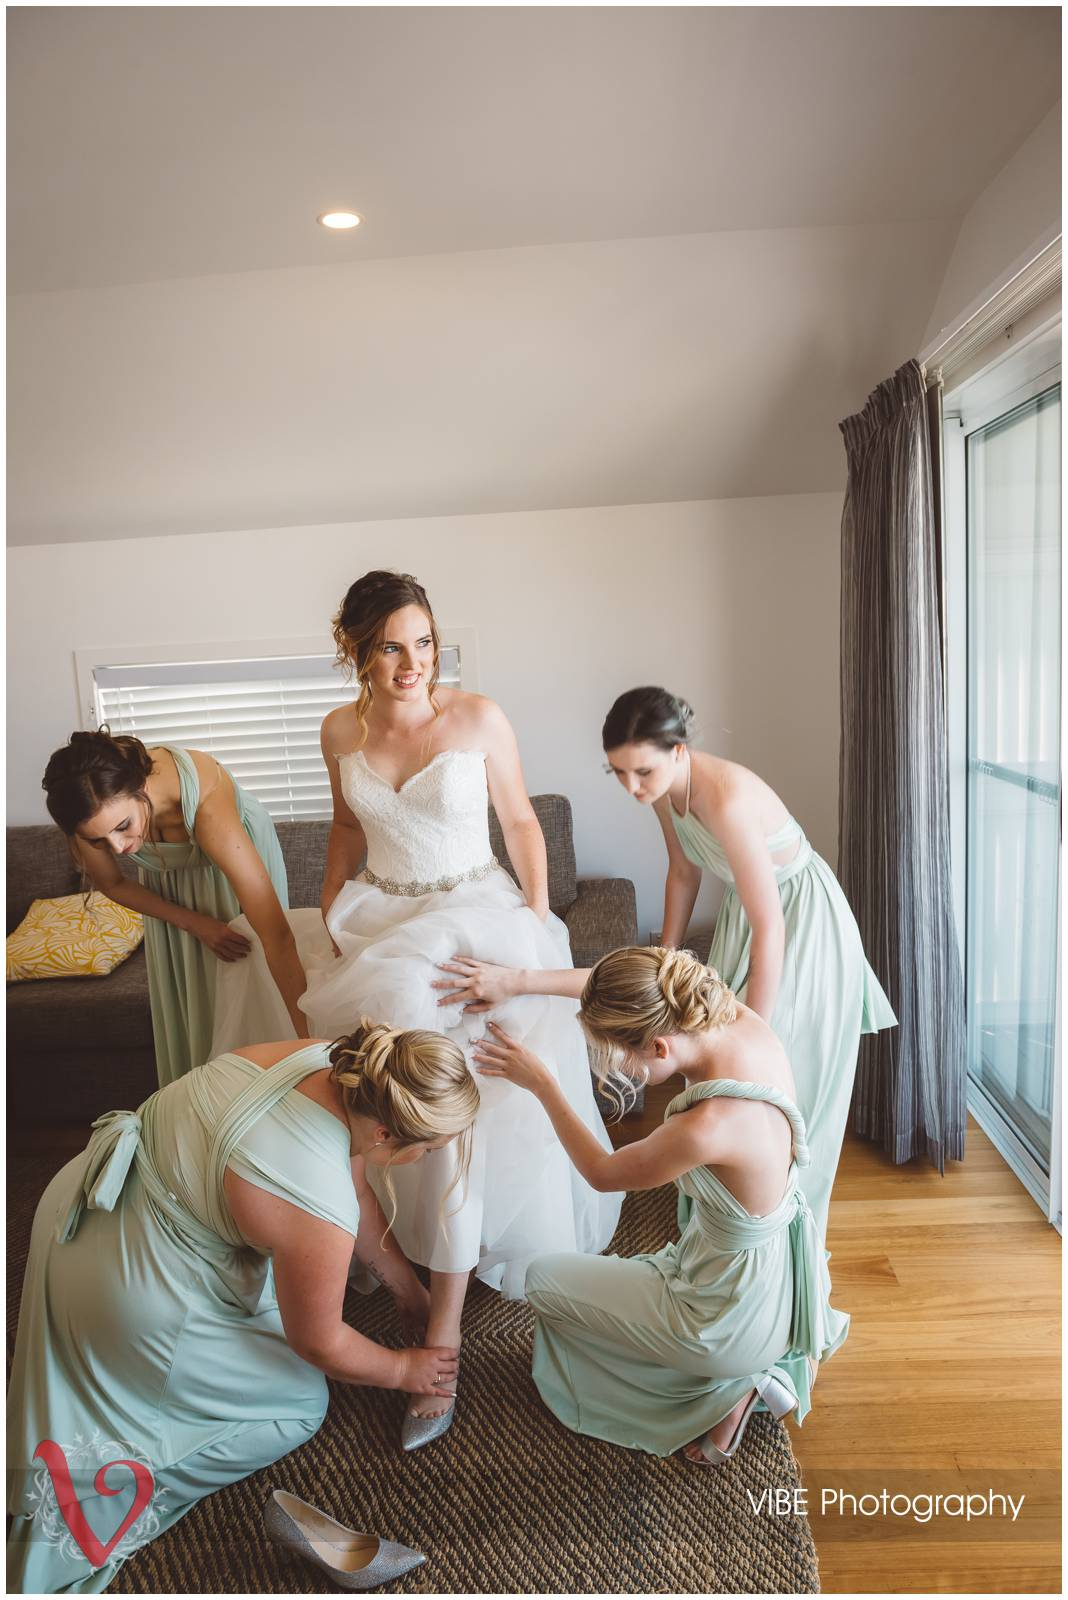 caves beach weddings vibe photography 4